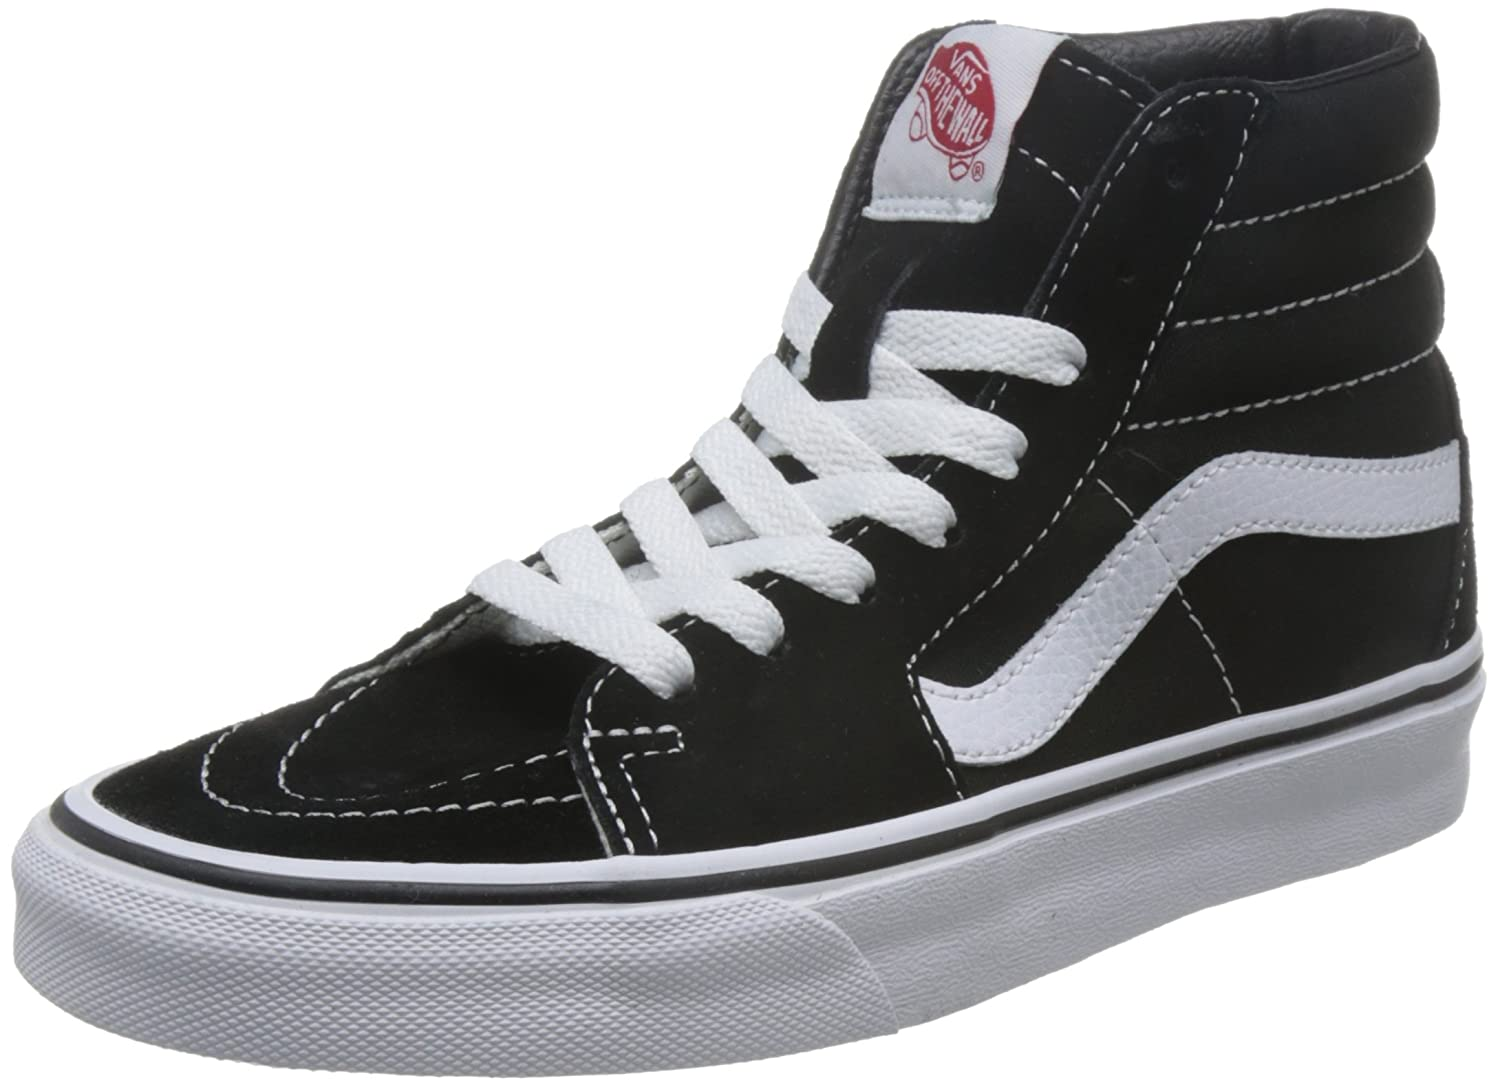 Vans Men's Sk8-Hi(Tm) Core Classics B075W7XKNH 9 M US Women / 7.5 M US Men|Black/Black/White Canvas